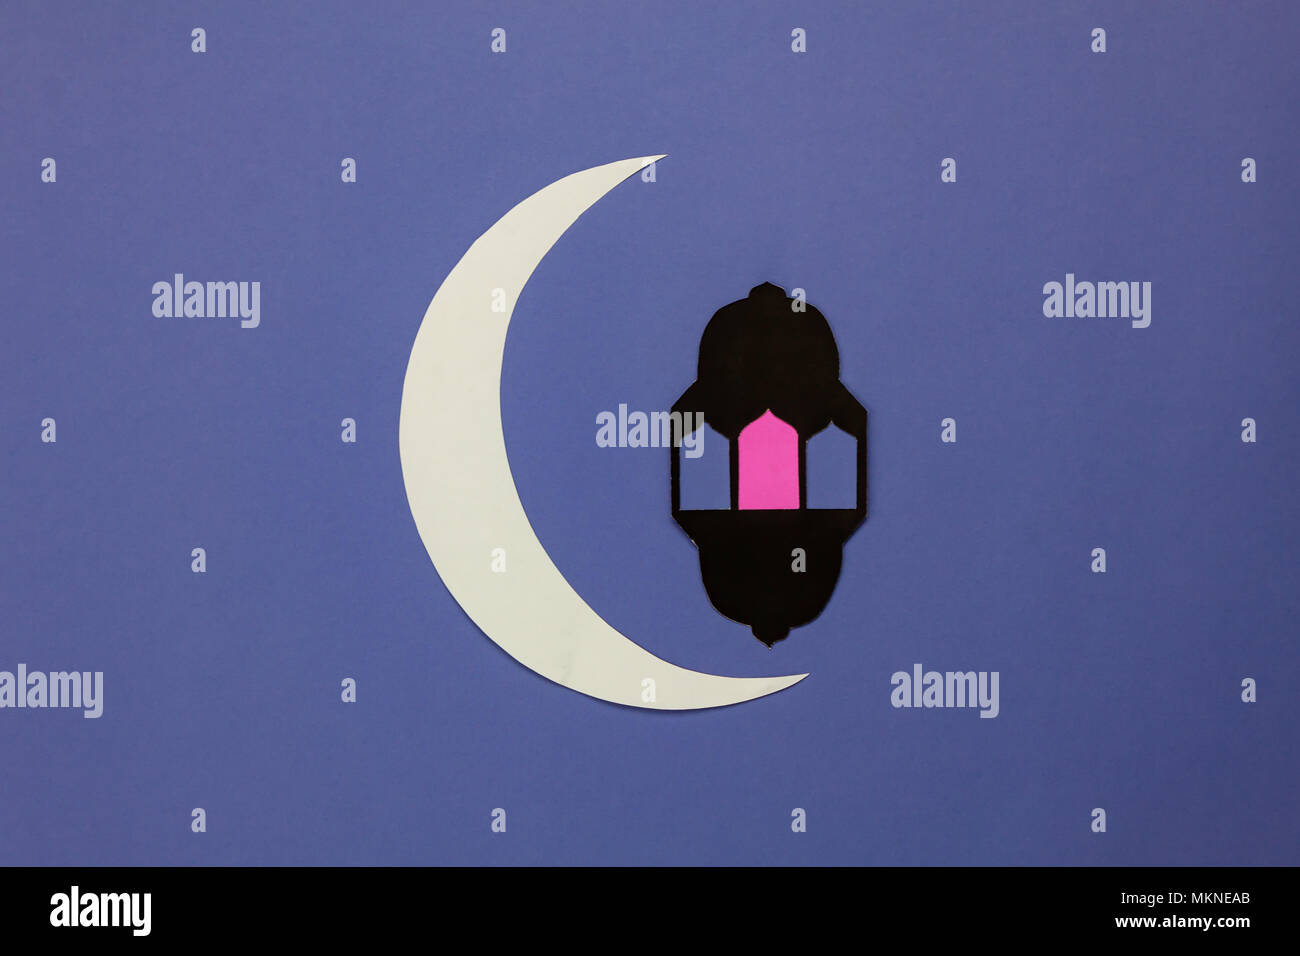 Amazing Display Eid Al-Fitr Decorations - table-top-view-aerial-image-of-decorations-ramadan-kareem-holiday-backgroundflat-lay-diy-paper-cut-of-white-moon-and-lantern-on-modern-rustic-brown-w-MKNEAB  HD_992745 .jpg